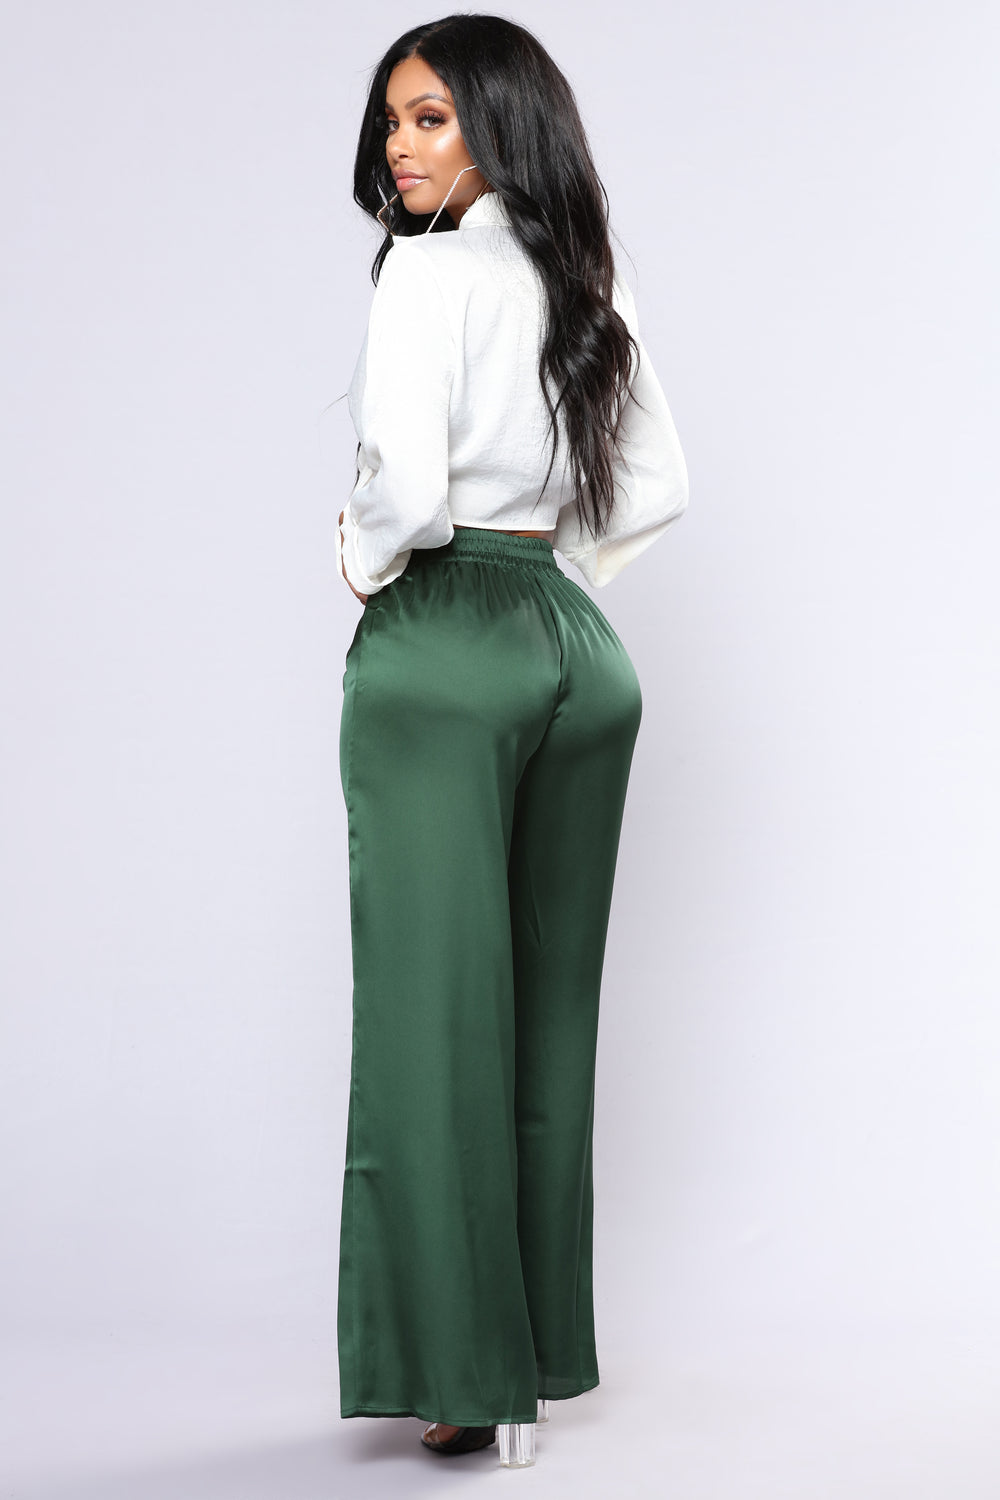 Buy Yomsong Women's High Waist Shiny Satin Neon Disco Pants and other Clothing at bestkapper.tk Our wide selection is elegible for free shipping and free returns/5().